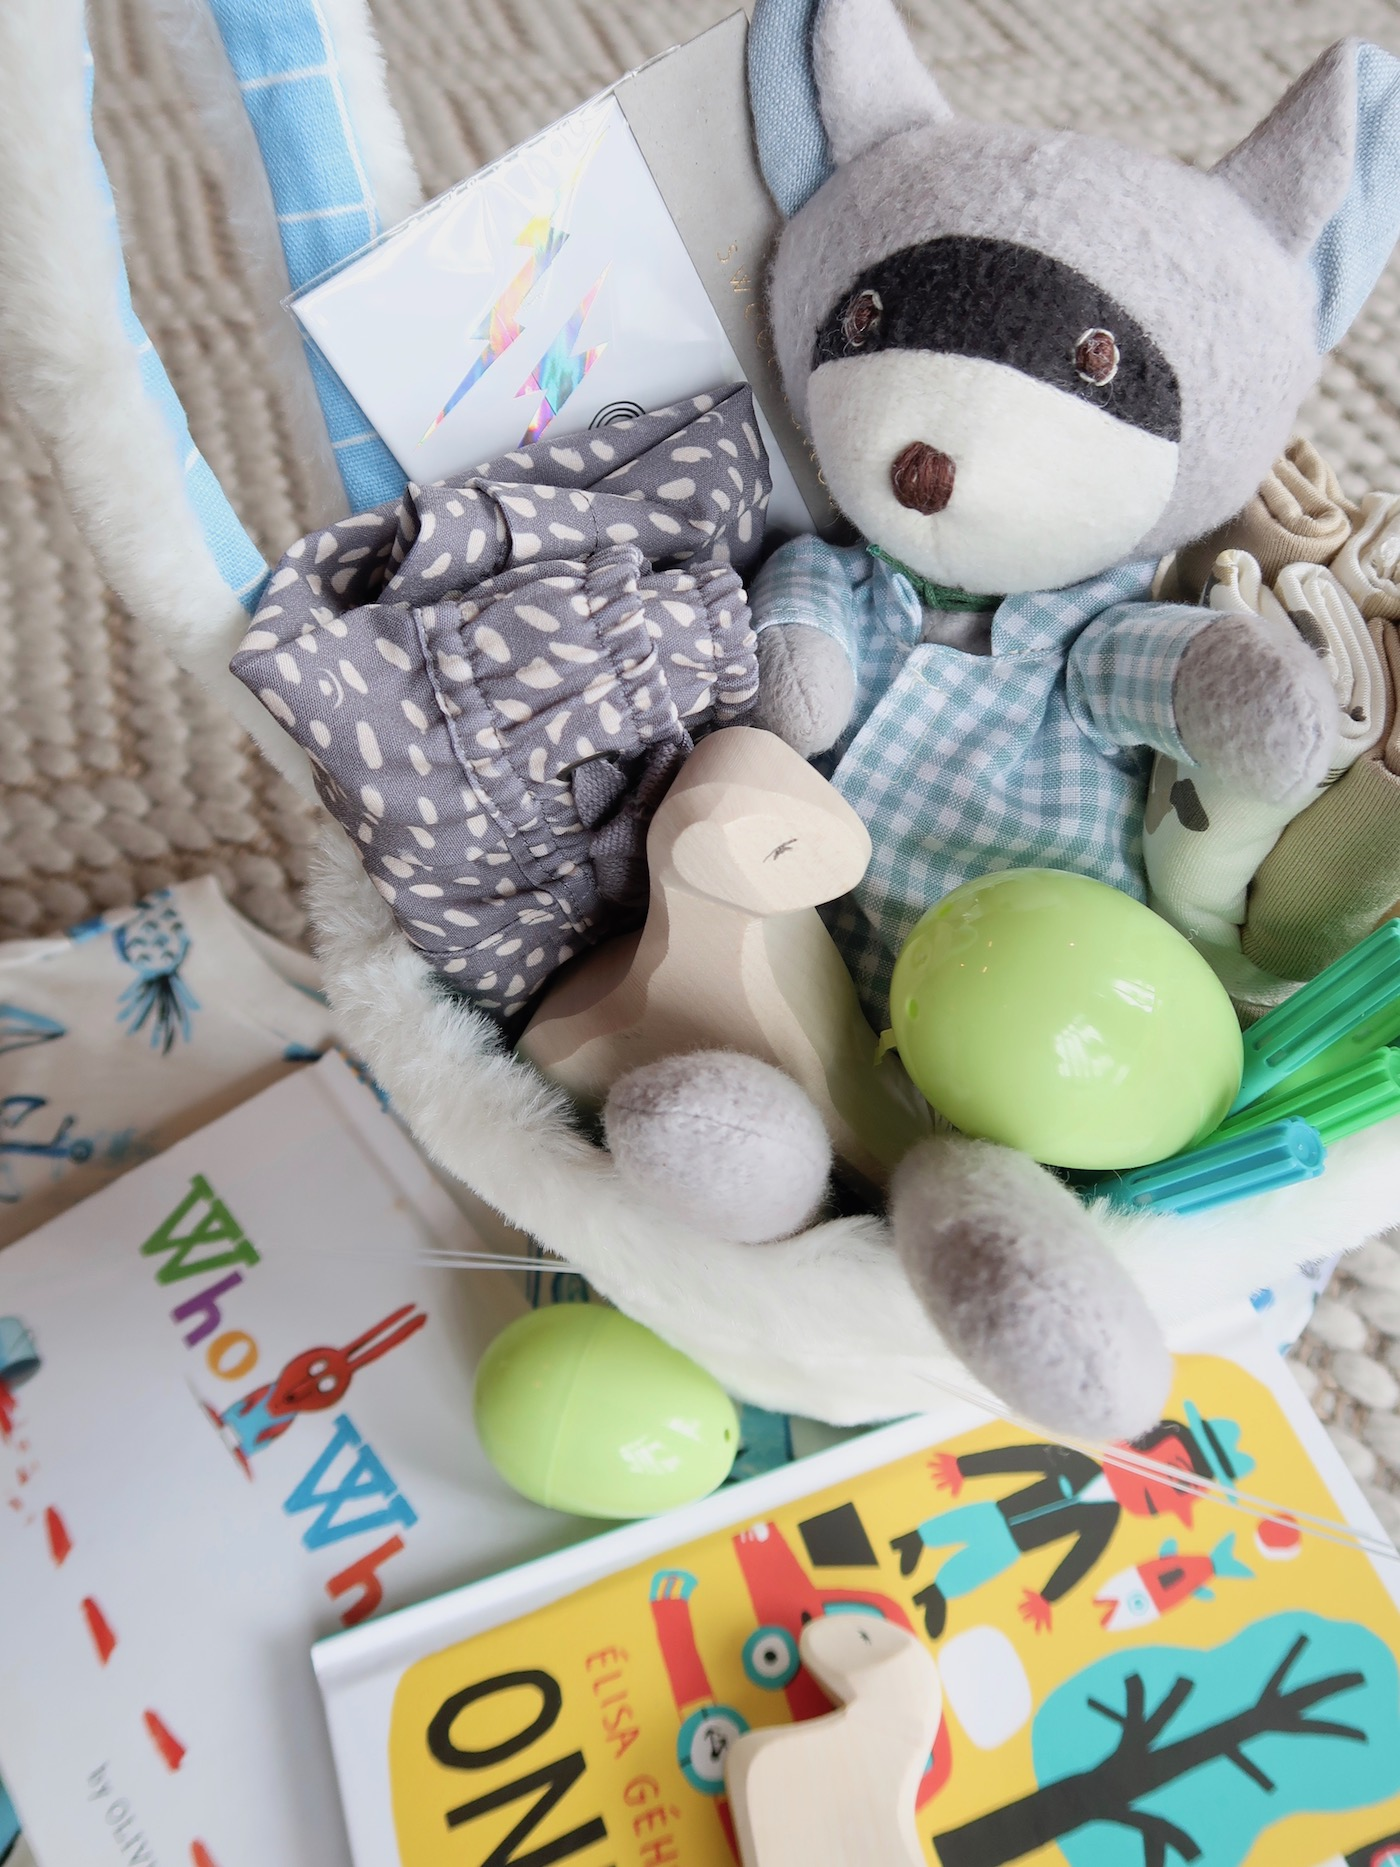 Easter Basket ideas for toddlers // #practical #useful #easterbasket